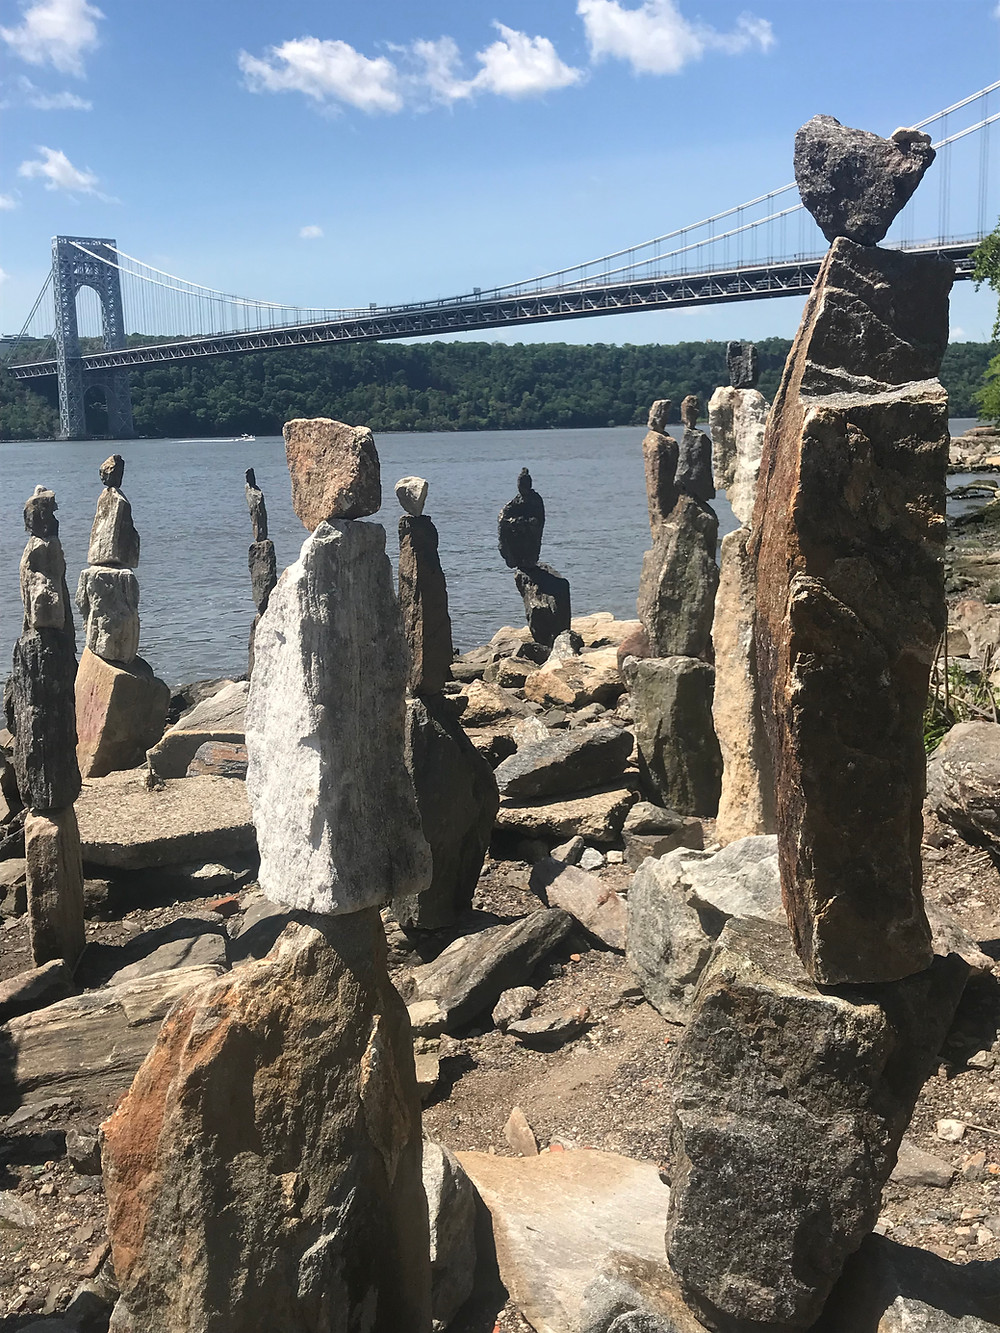 The Sisyphus Stones by the banks of the Hudson River